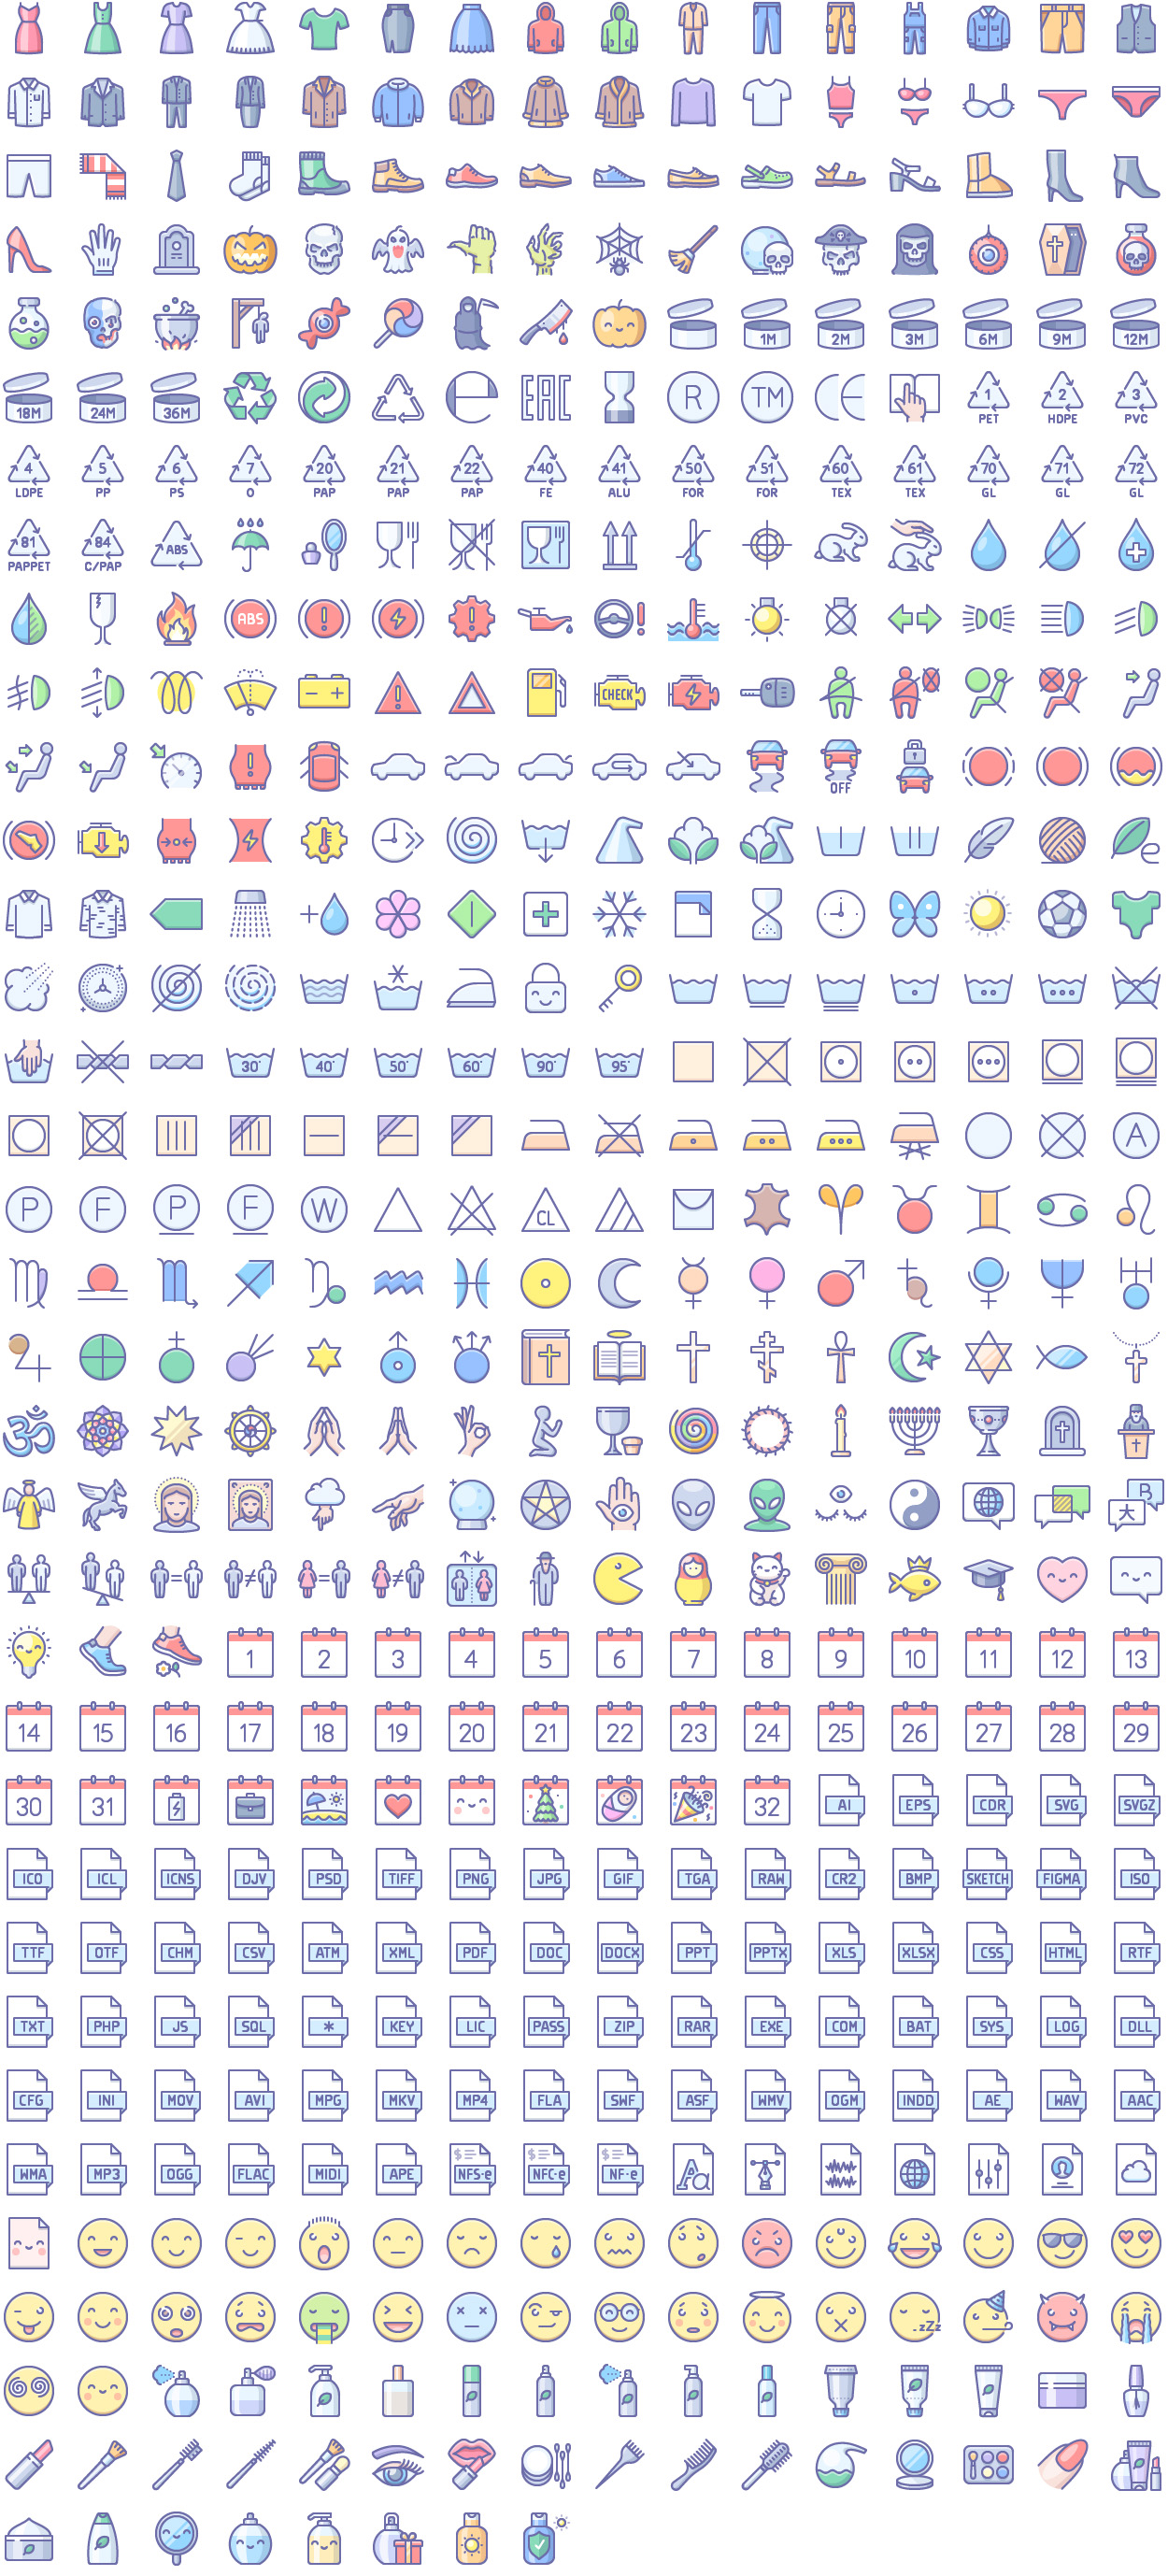 Unigrid 2 Phantom icons full